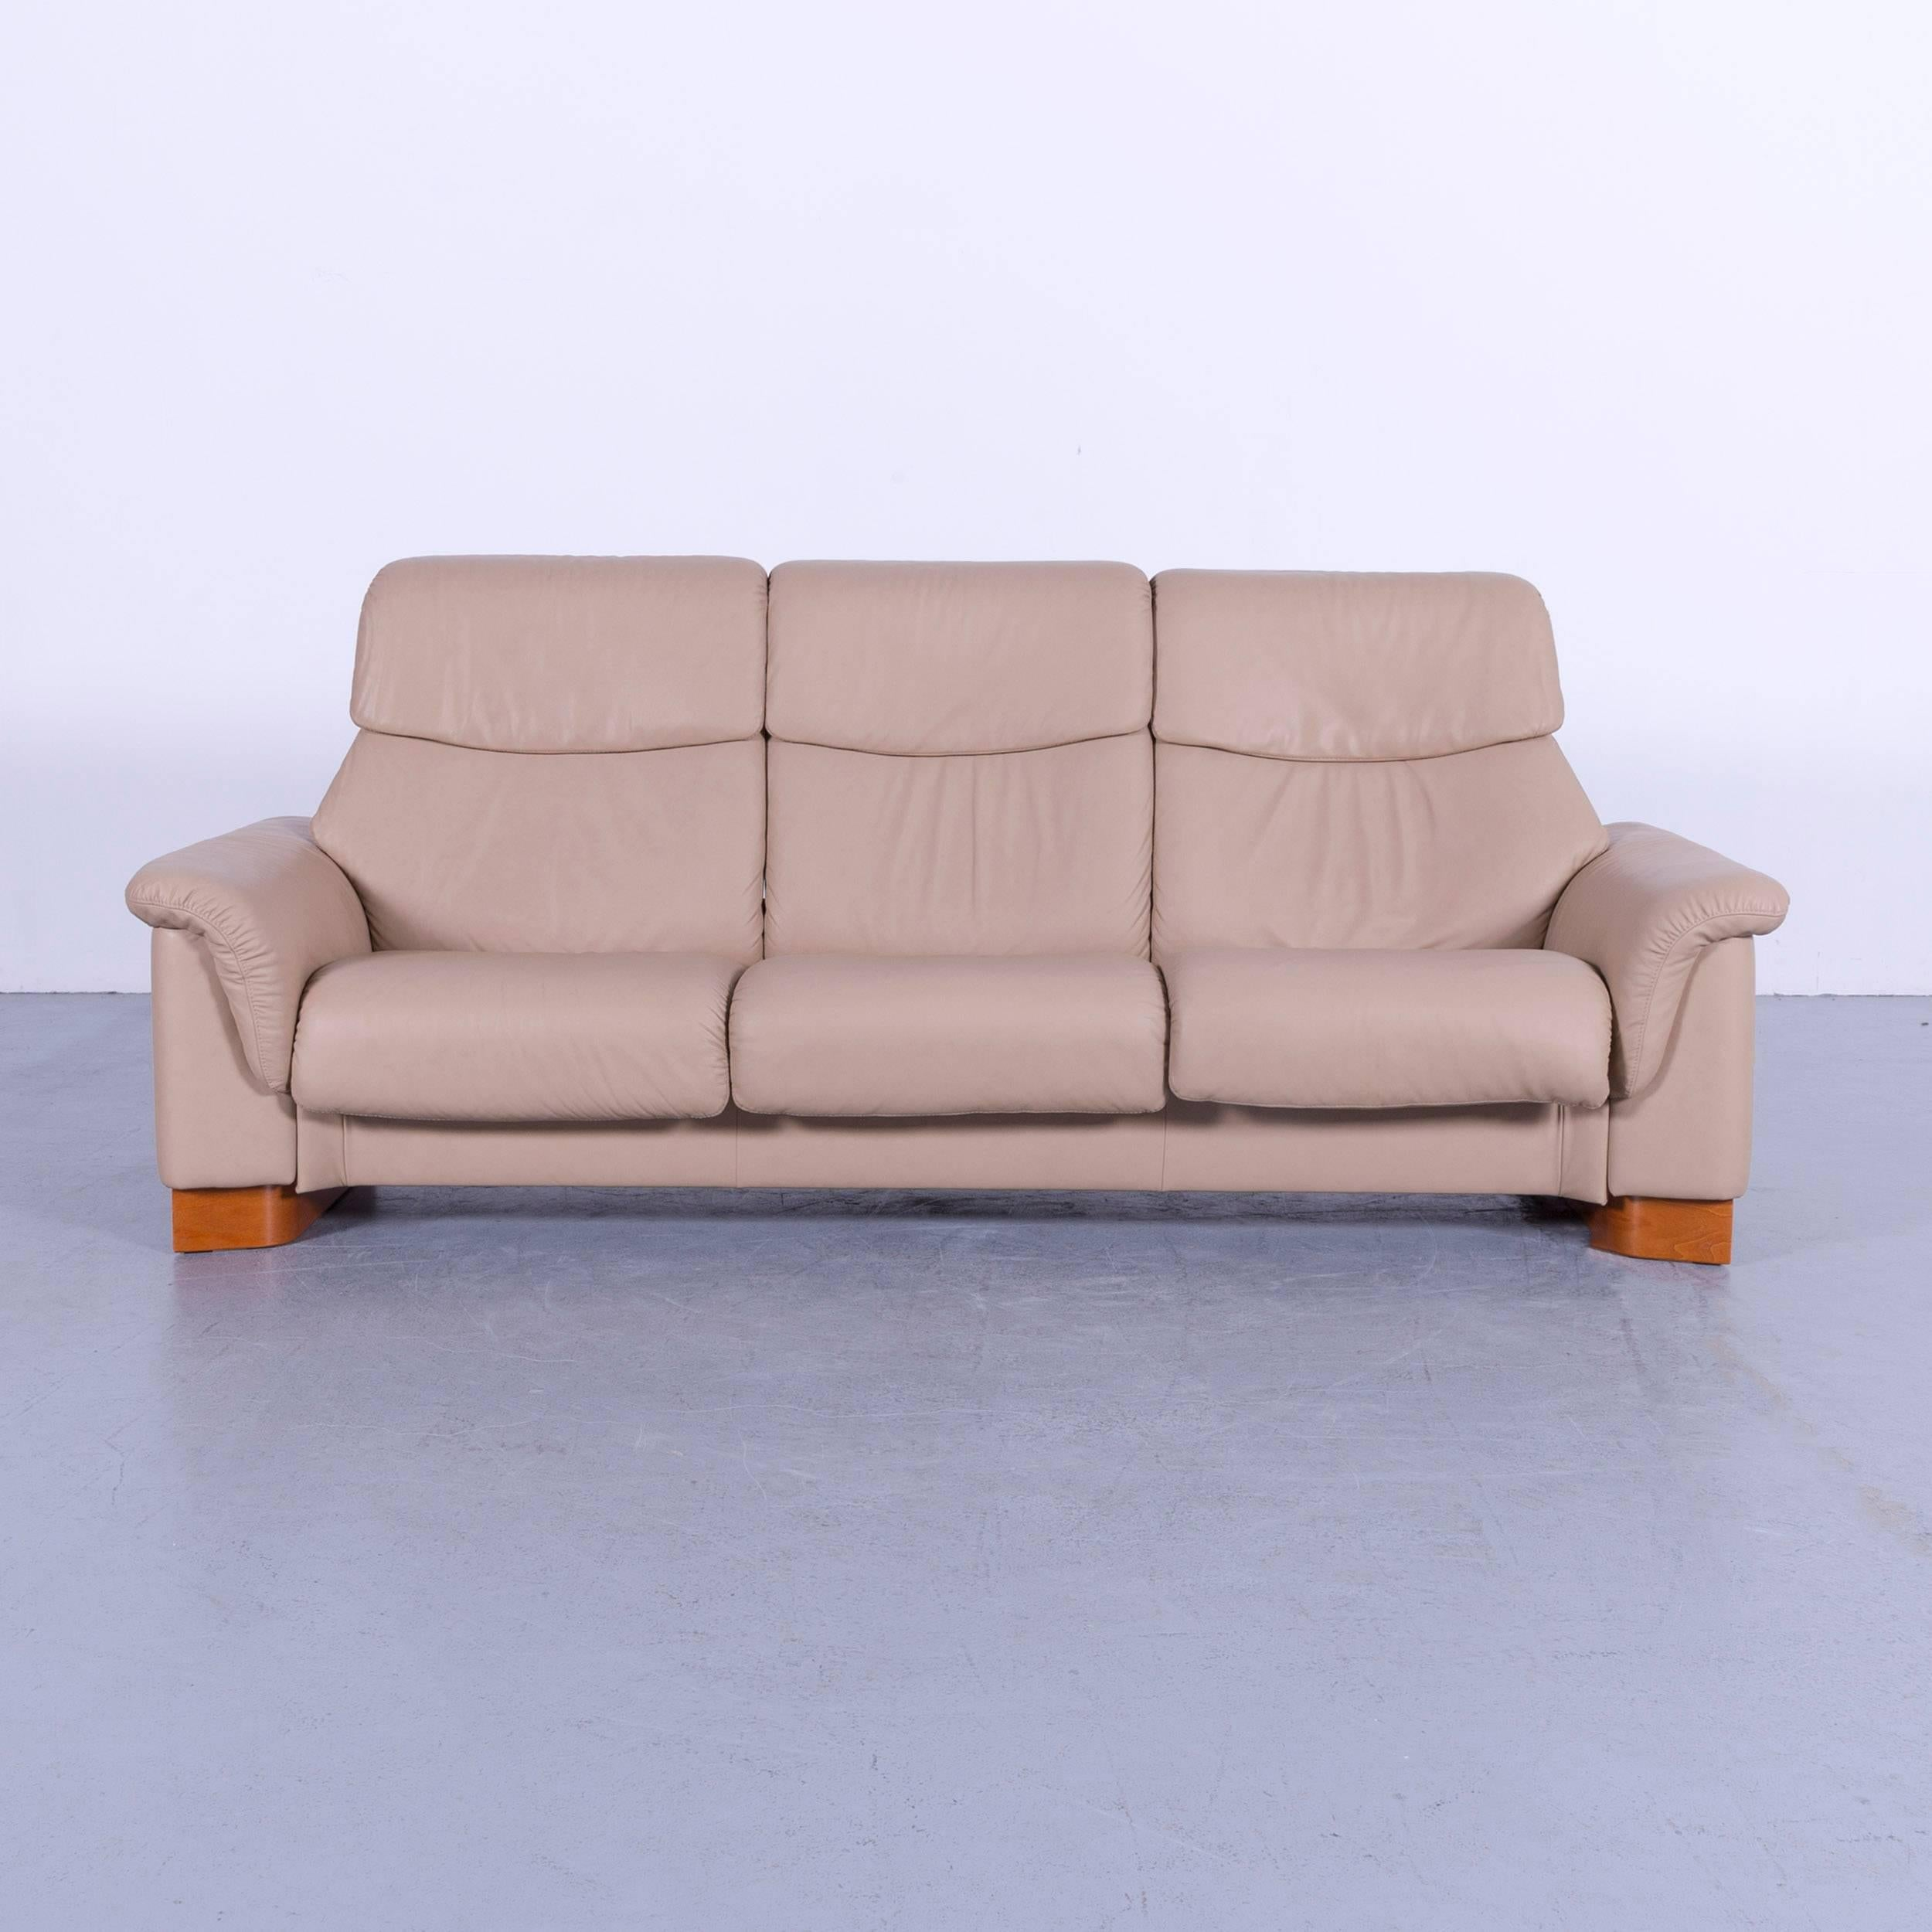 Couch Sessel Stressless Sessel Und Sofa